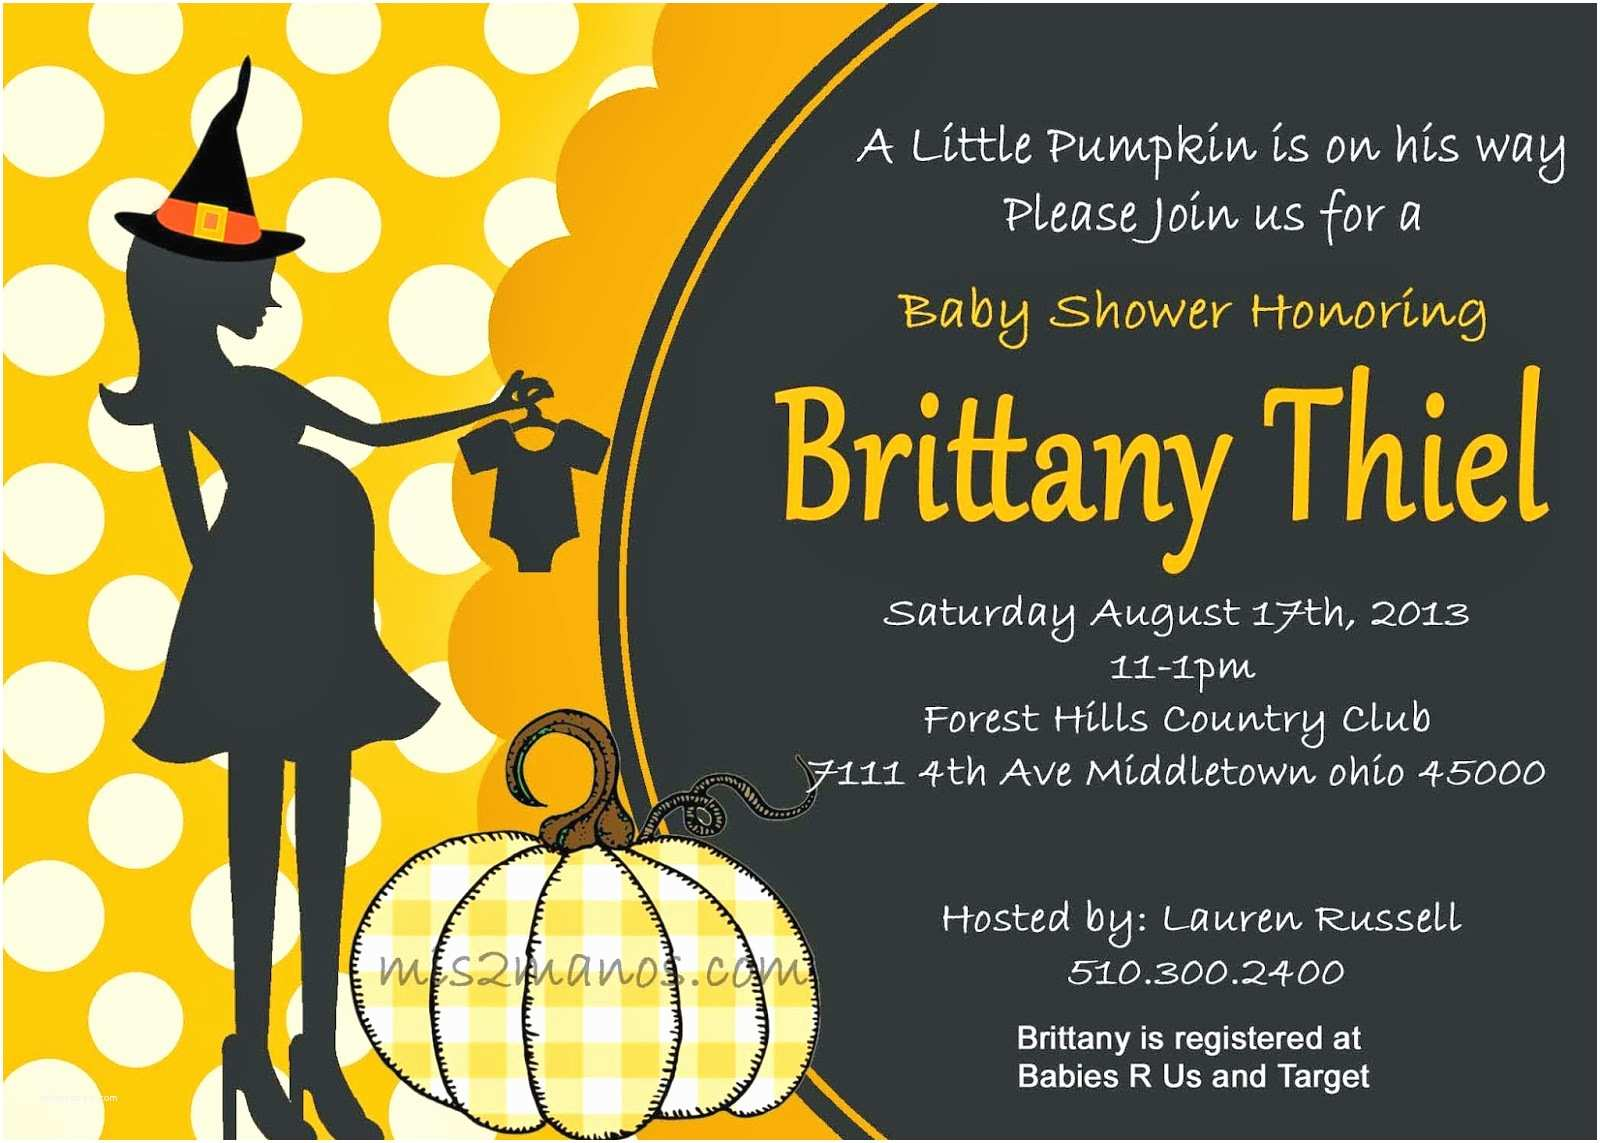 Invitation Wording for Adults Only Party Mis 2 Manos Made by My Hands Halloween Baby Shower